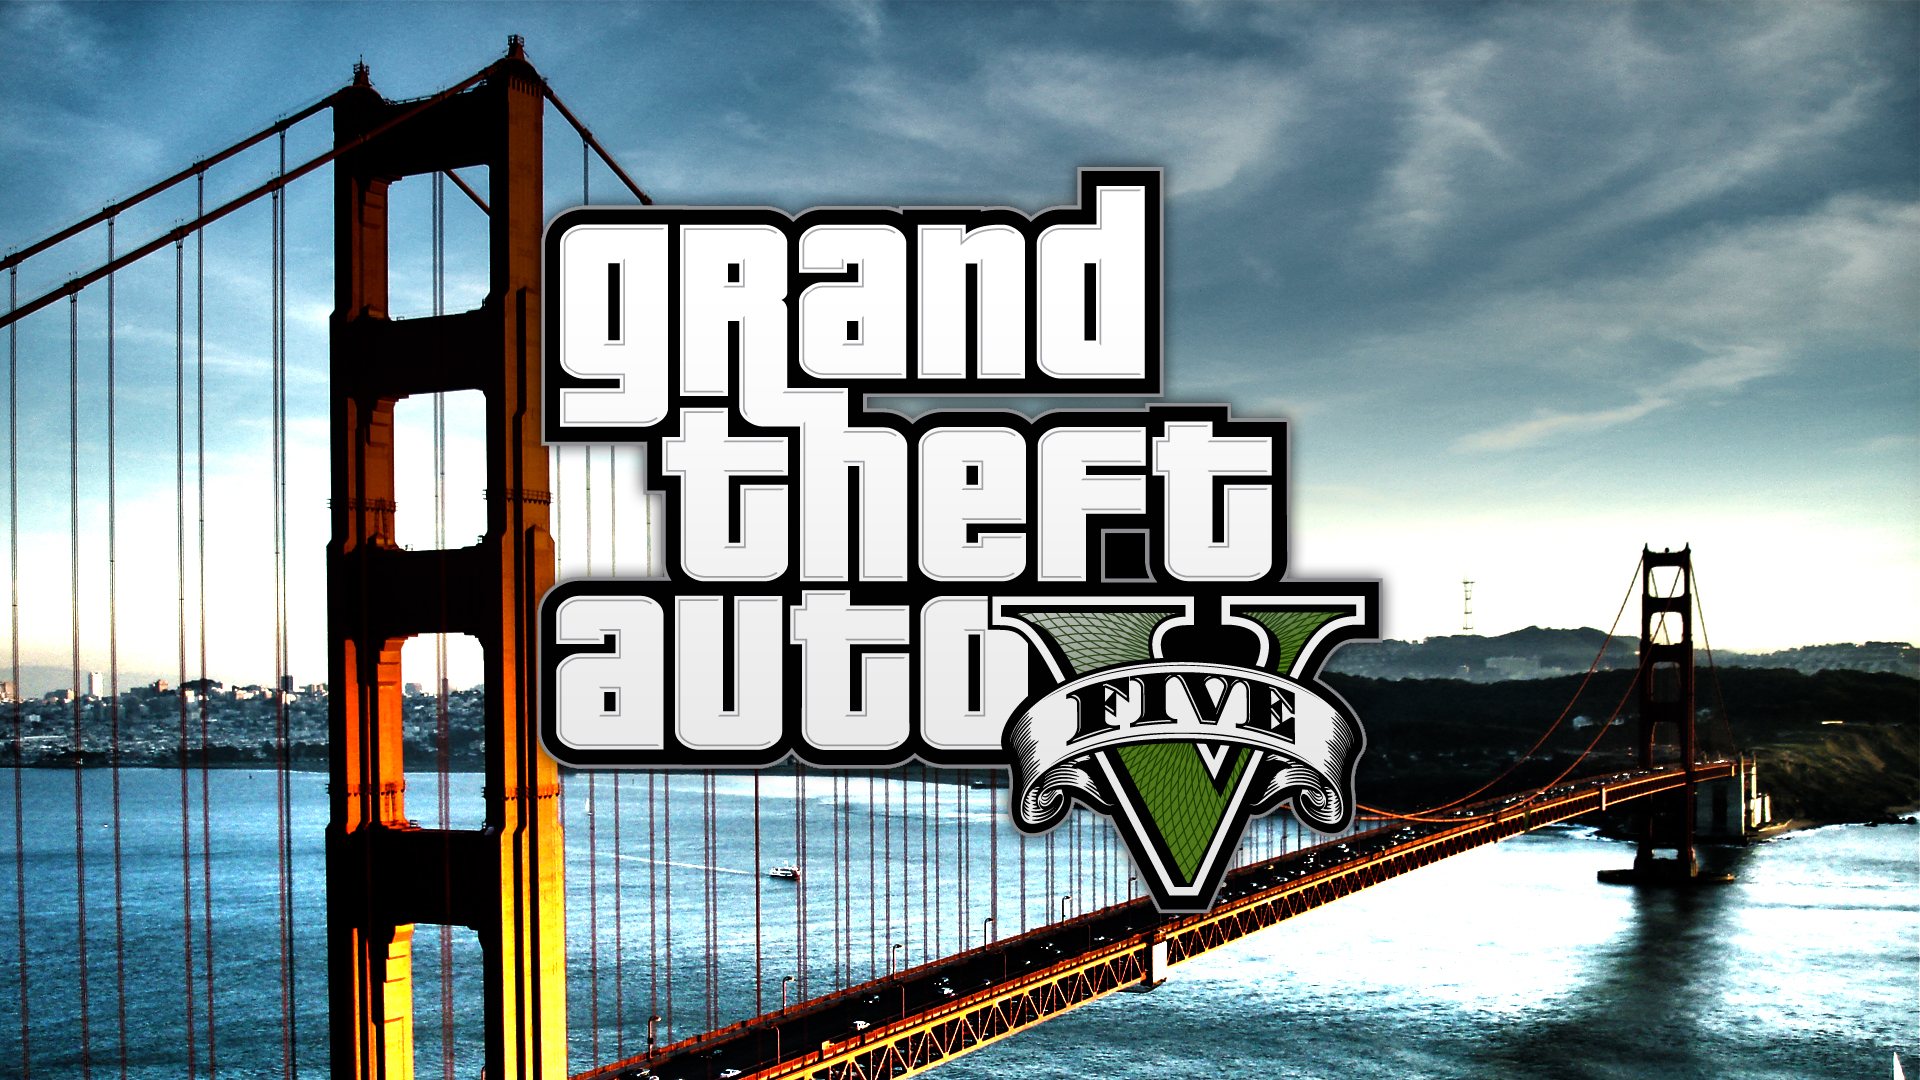 GTA 5 Wallpaper For Desktop and You Like Grand Theft Auto 5 Wallpapers 1920x1080